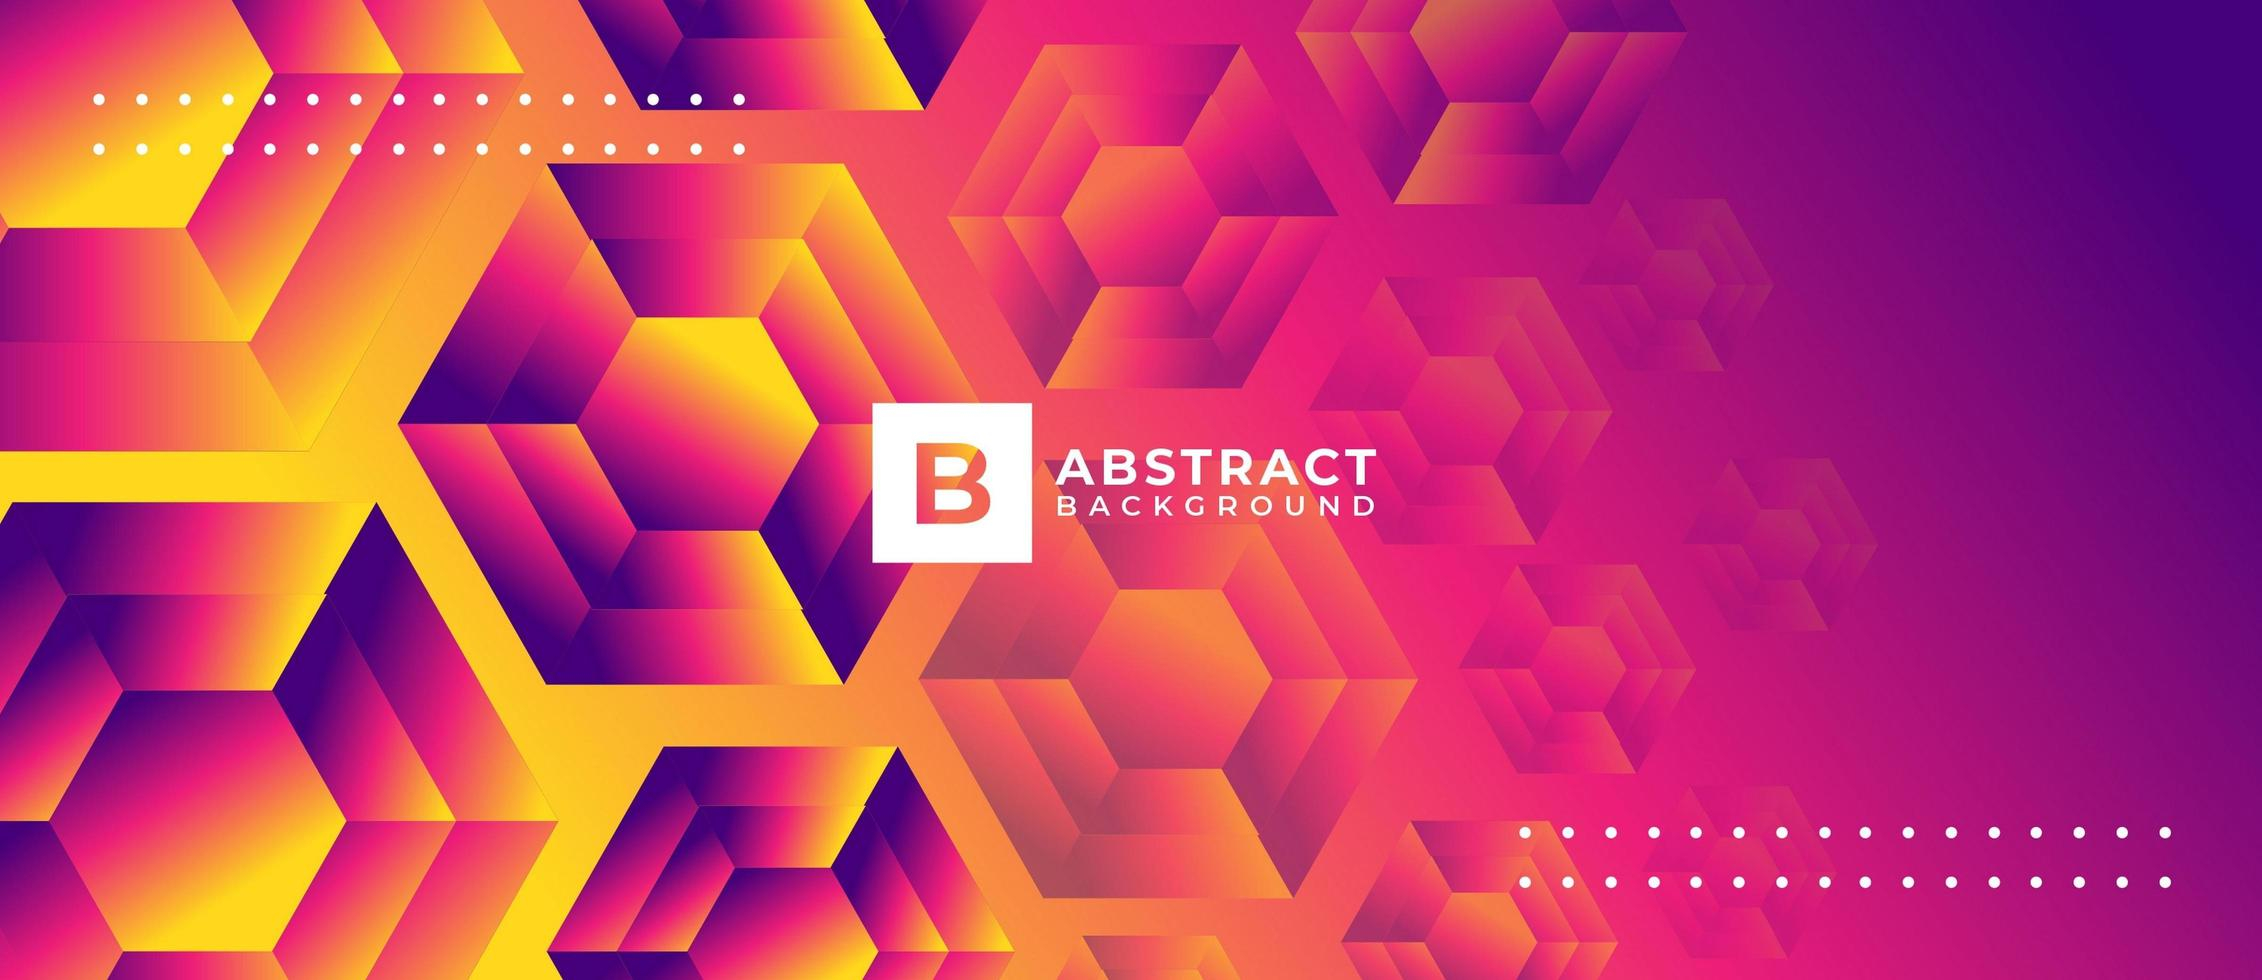 Geometric Orange and Pink Polygon Shape Abstract Background vector